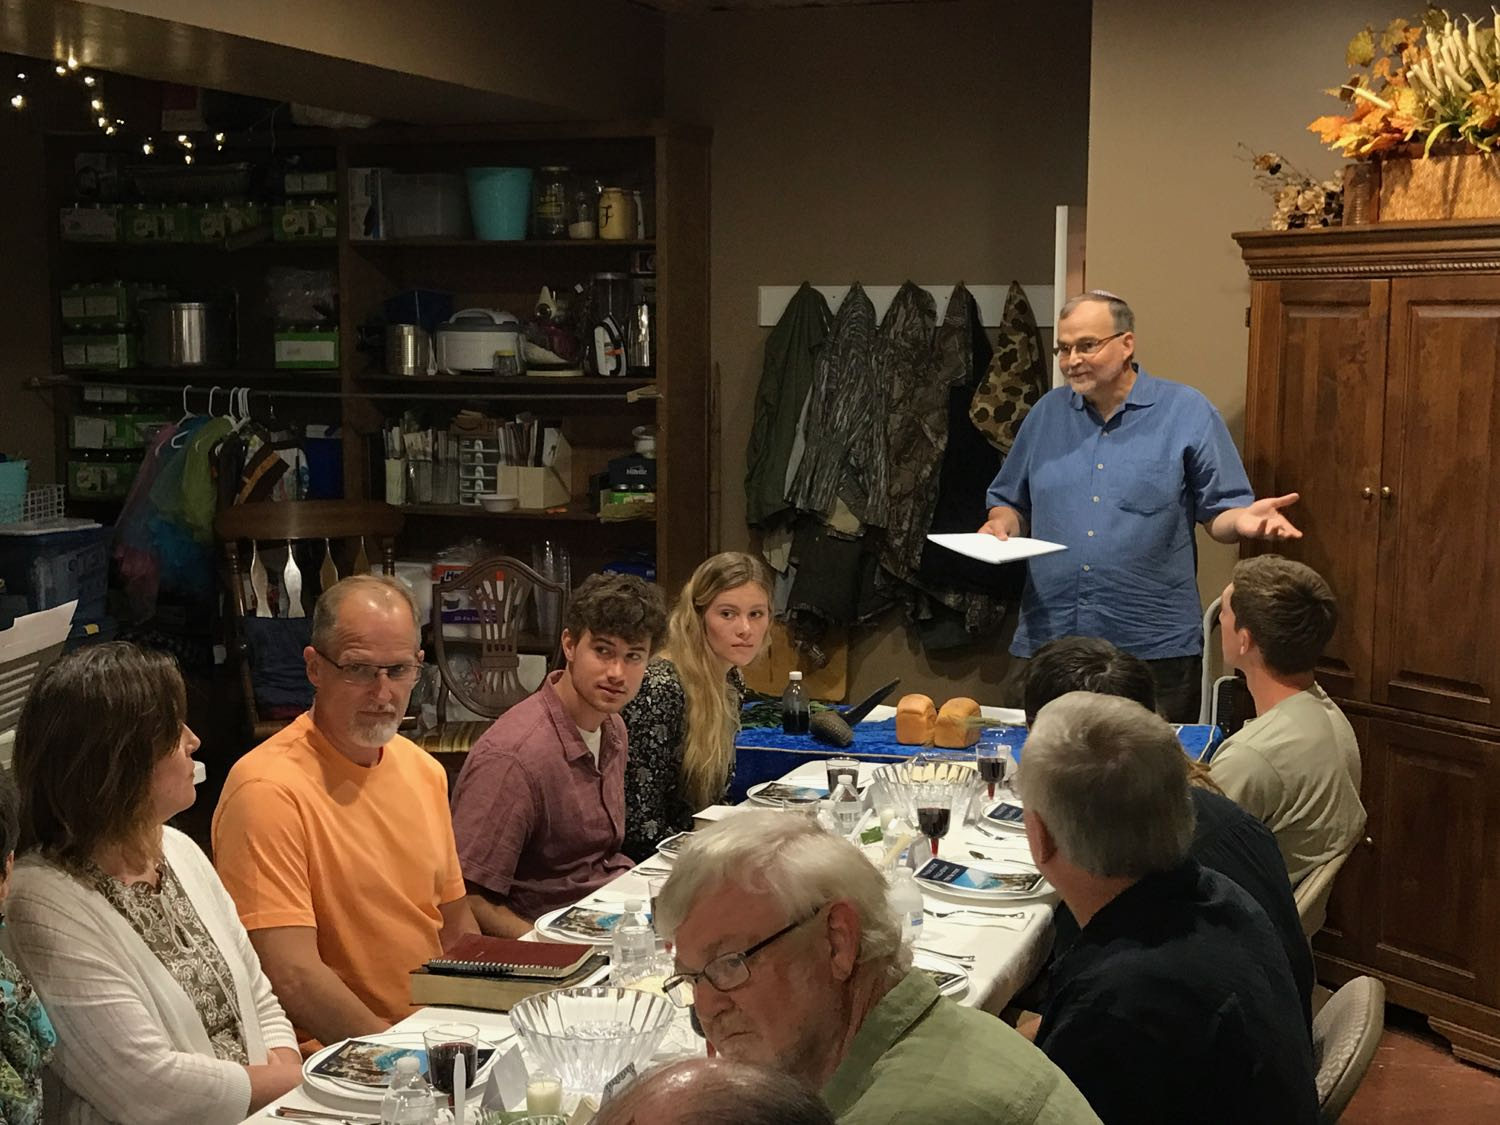 Part of the Team Yeshua orientation involved an authentic Passover Seder courtesy of Friends of Israel Gospel Ministry.